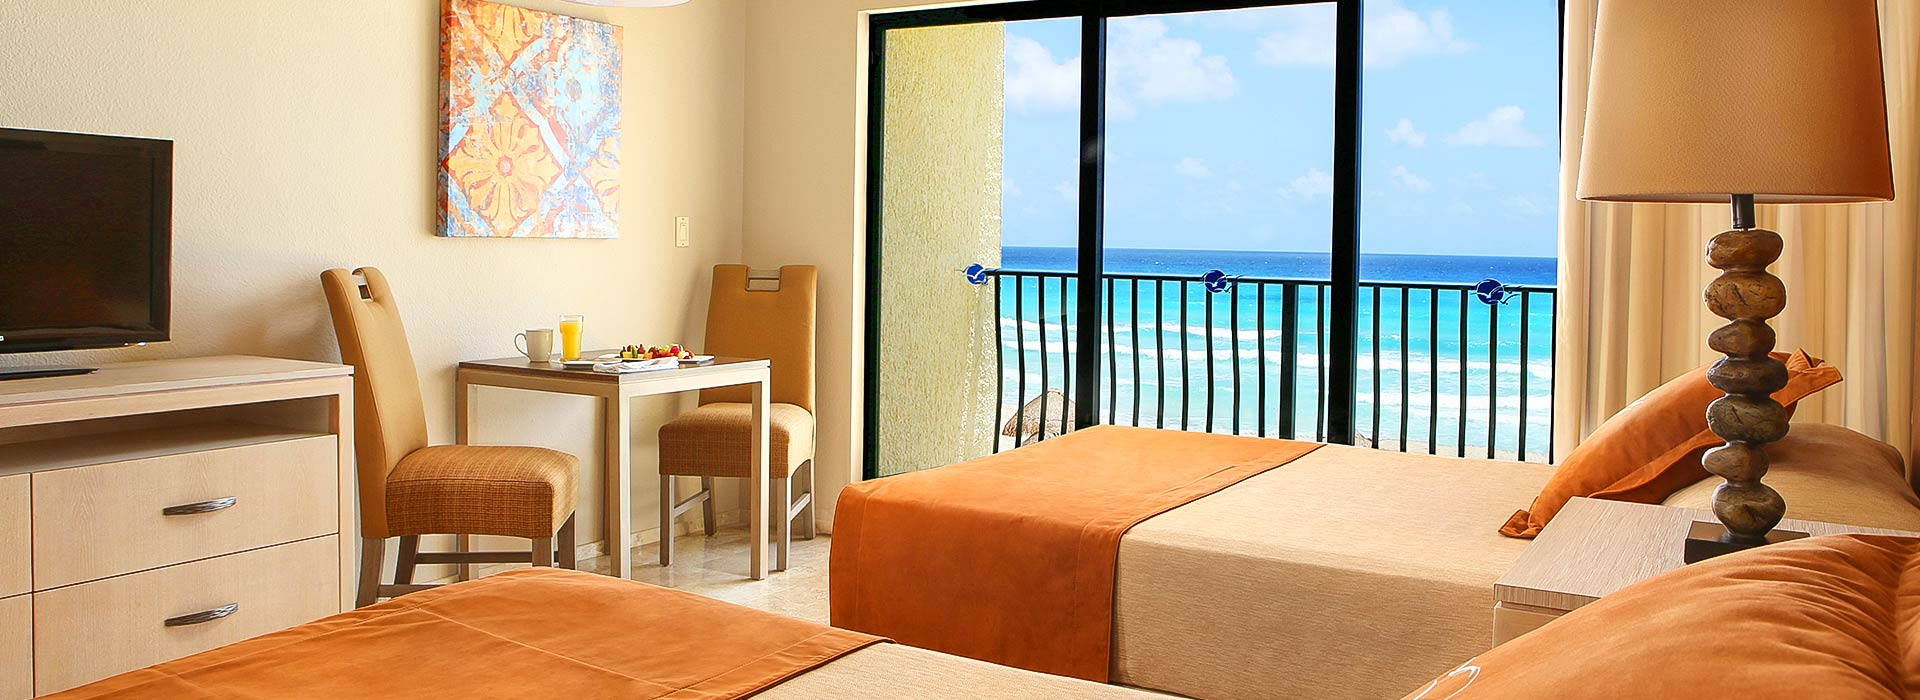 Beachfront two bedrooms villa and two double beds in The Royal Sands All Inclusive Resort in Cancun